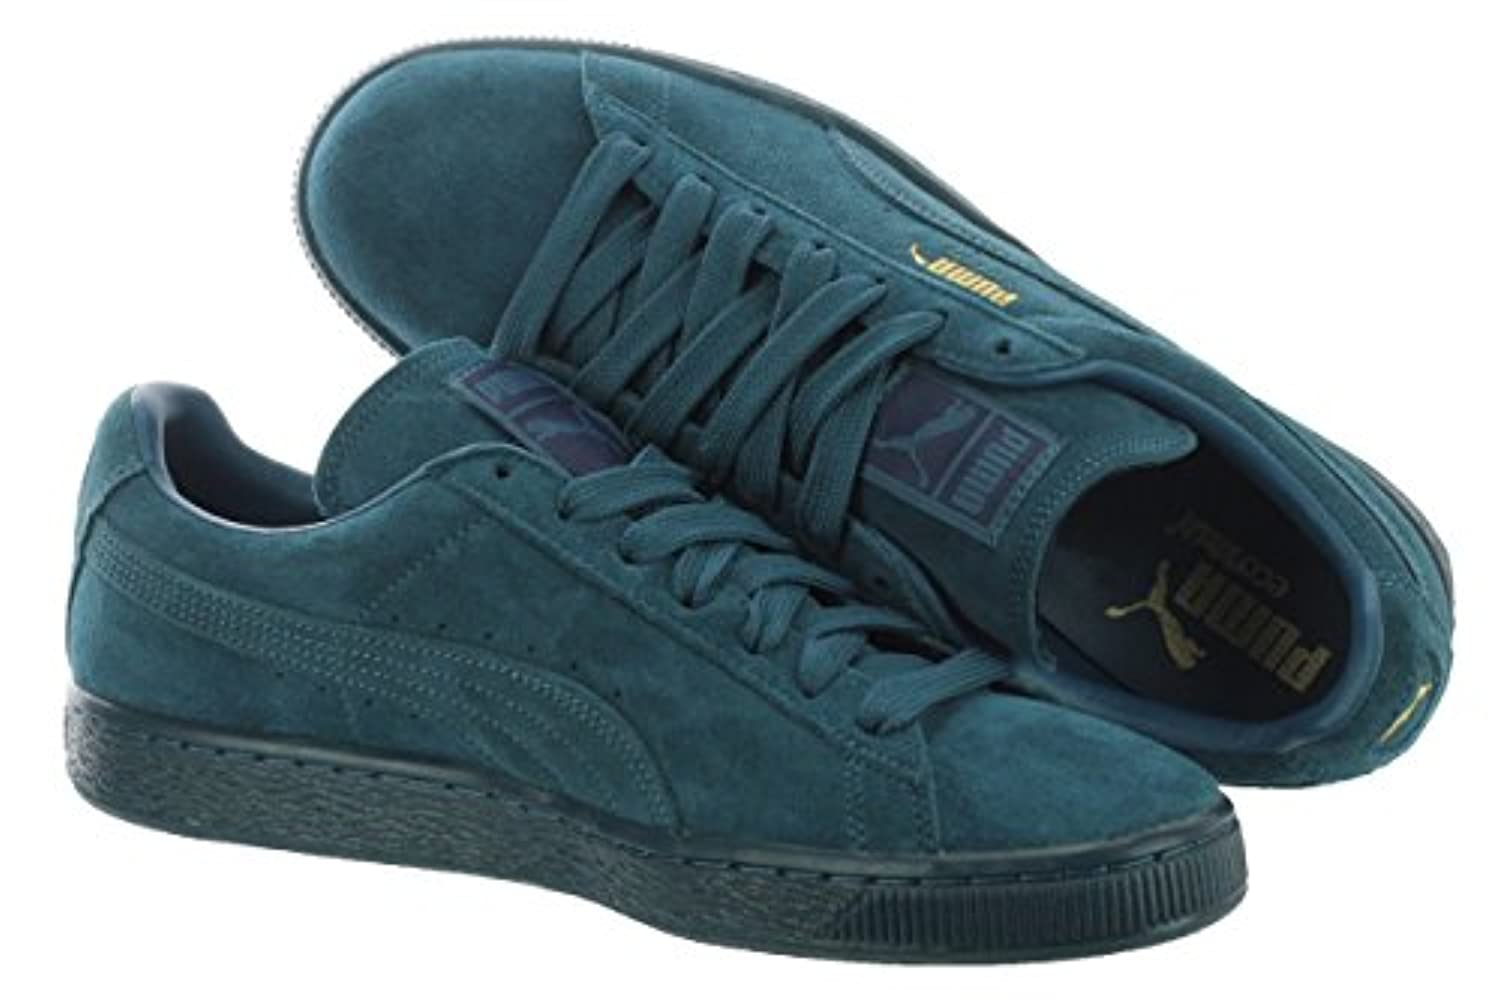 new style a31d6 f741d Puma Suede Classic + Mono Iced 36023101 Blue Coral / Team Gold 11 D(M) US  Men | $37.89 - Buy today!